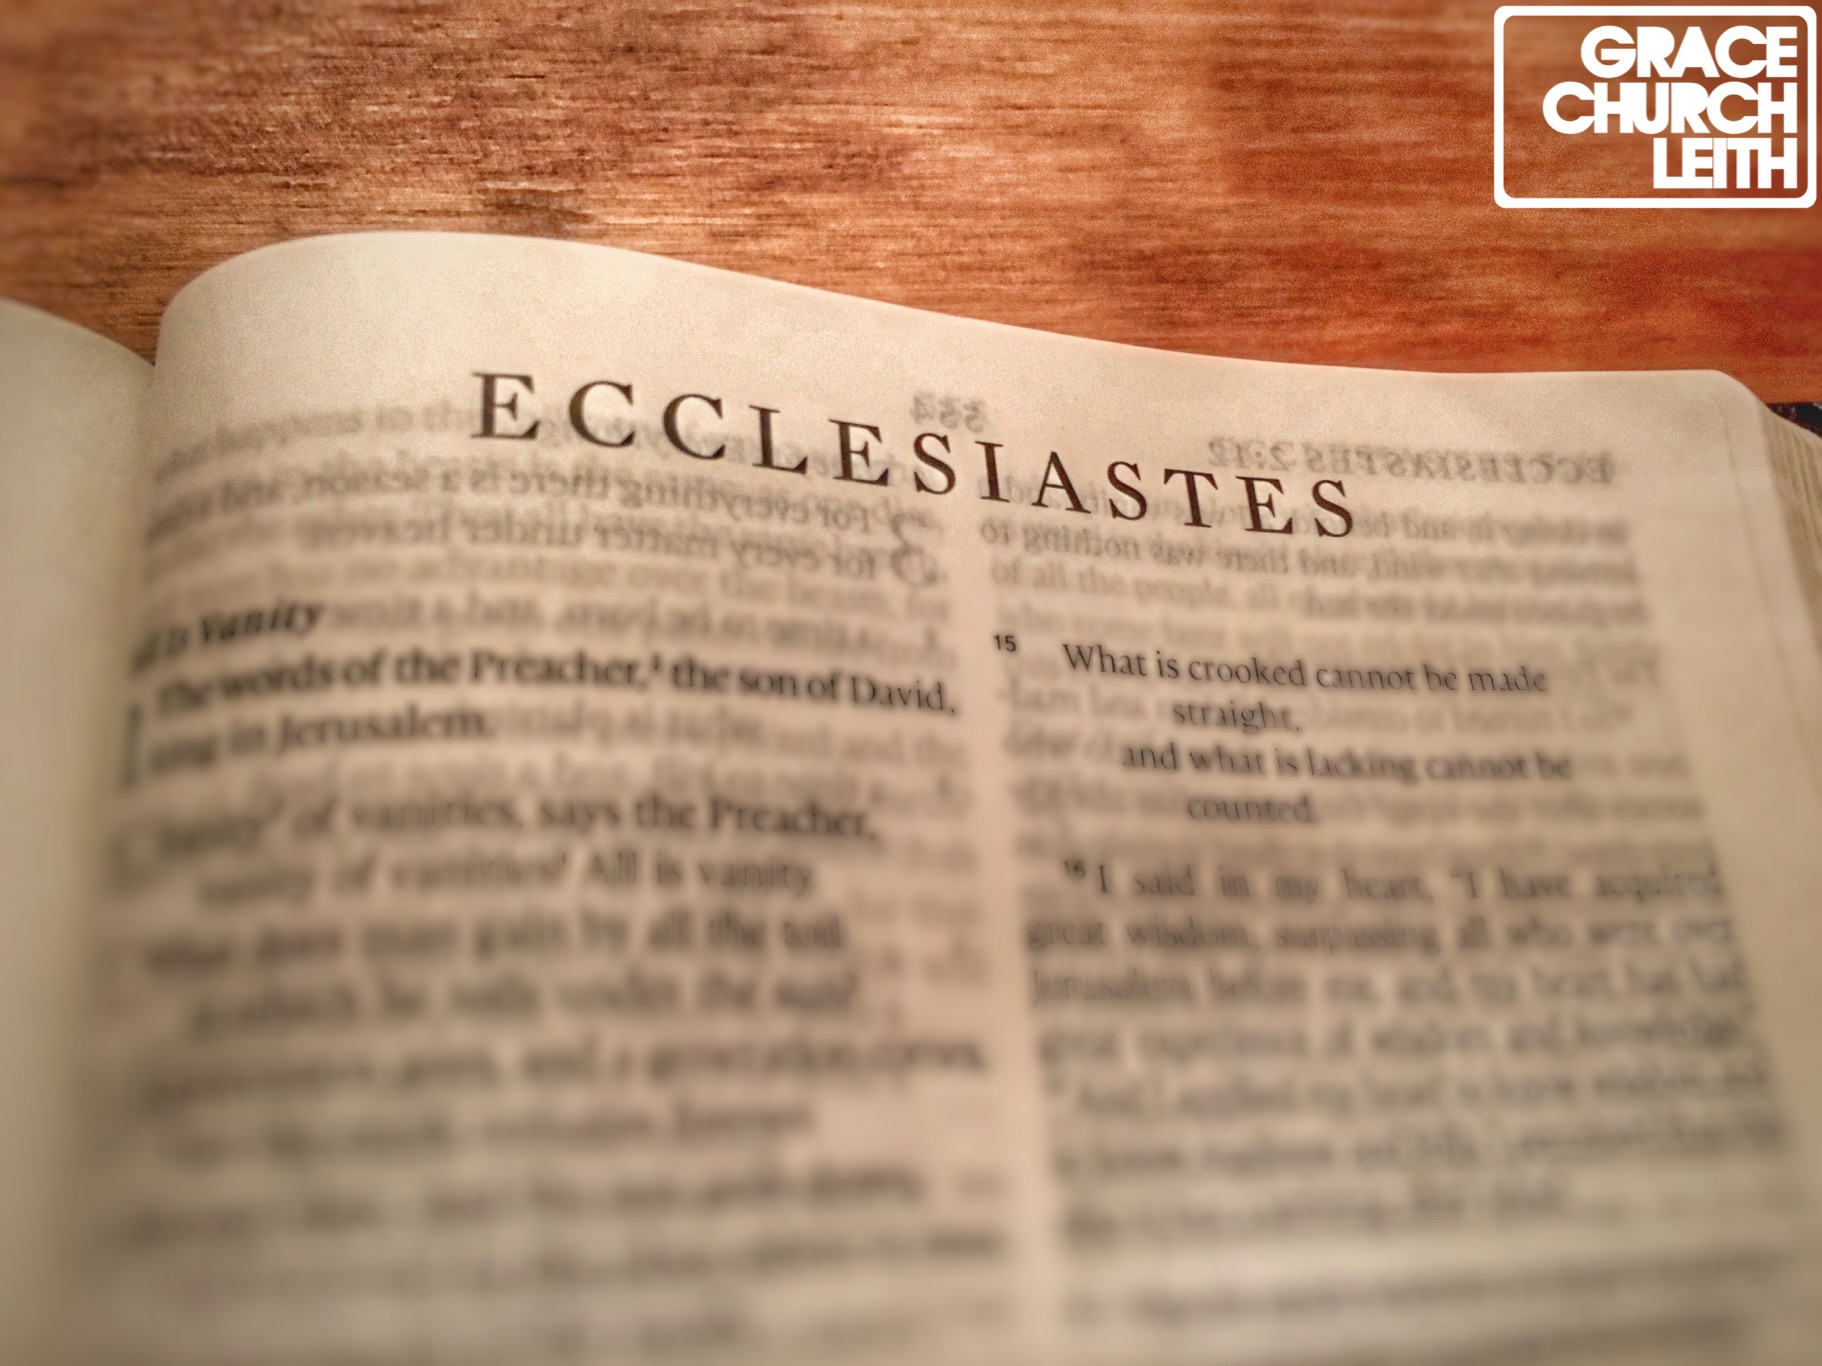 Ecclesiastes Logo - GCL Grace Church Leith Edinburgh.JPG